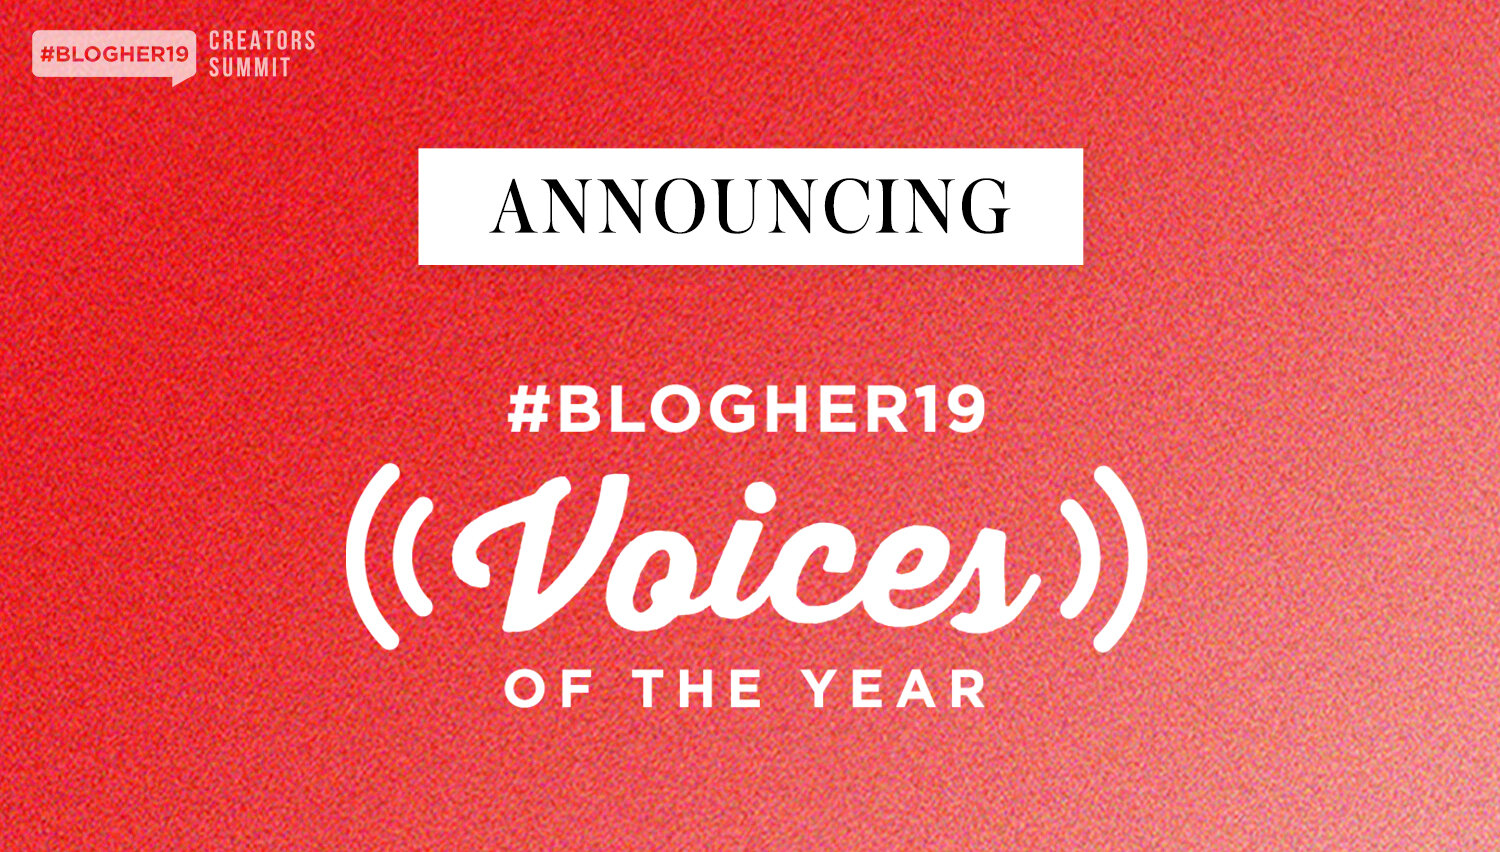 MEET OUR 2019 PRESENTERS AND WINNERS - Alysia Reiner, Diane Guerrero and our own Reshma Gopaldas will join Julianna and Connie at #BlogHer19 Creators Summit as they recognize five women for the impact their voices have made on the world.